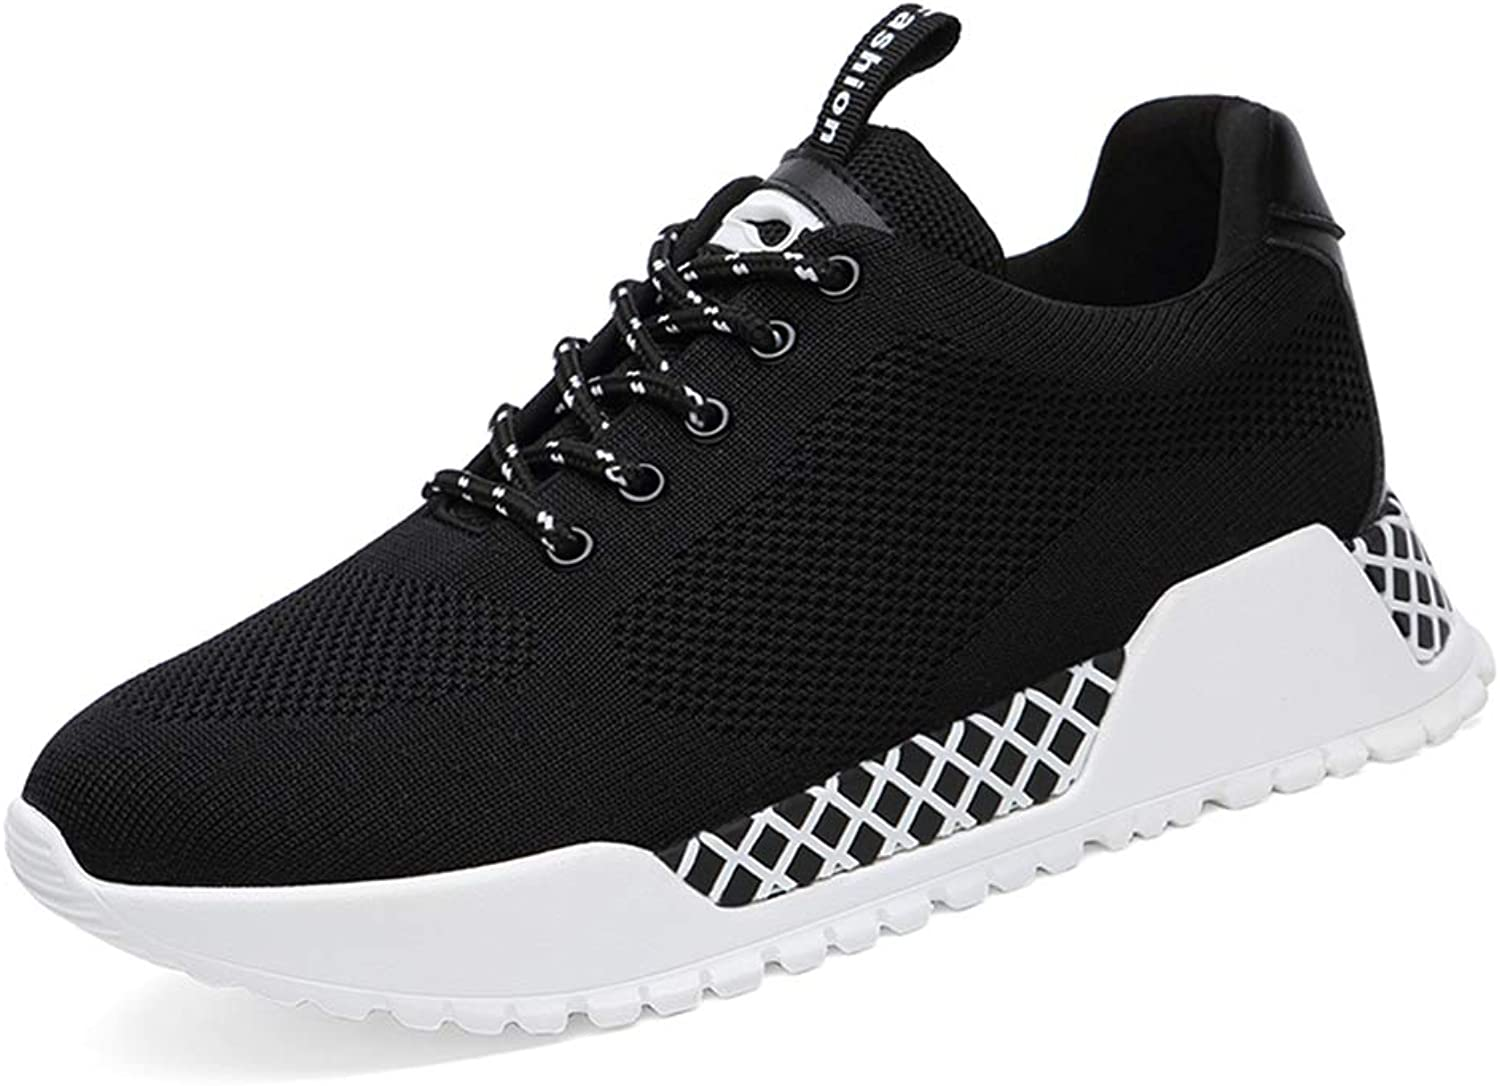 Btrada Women's Fashion Sneakers Round Head Sports shoes Casual Anti-Slip Lace-up Walking Running shoes